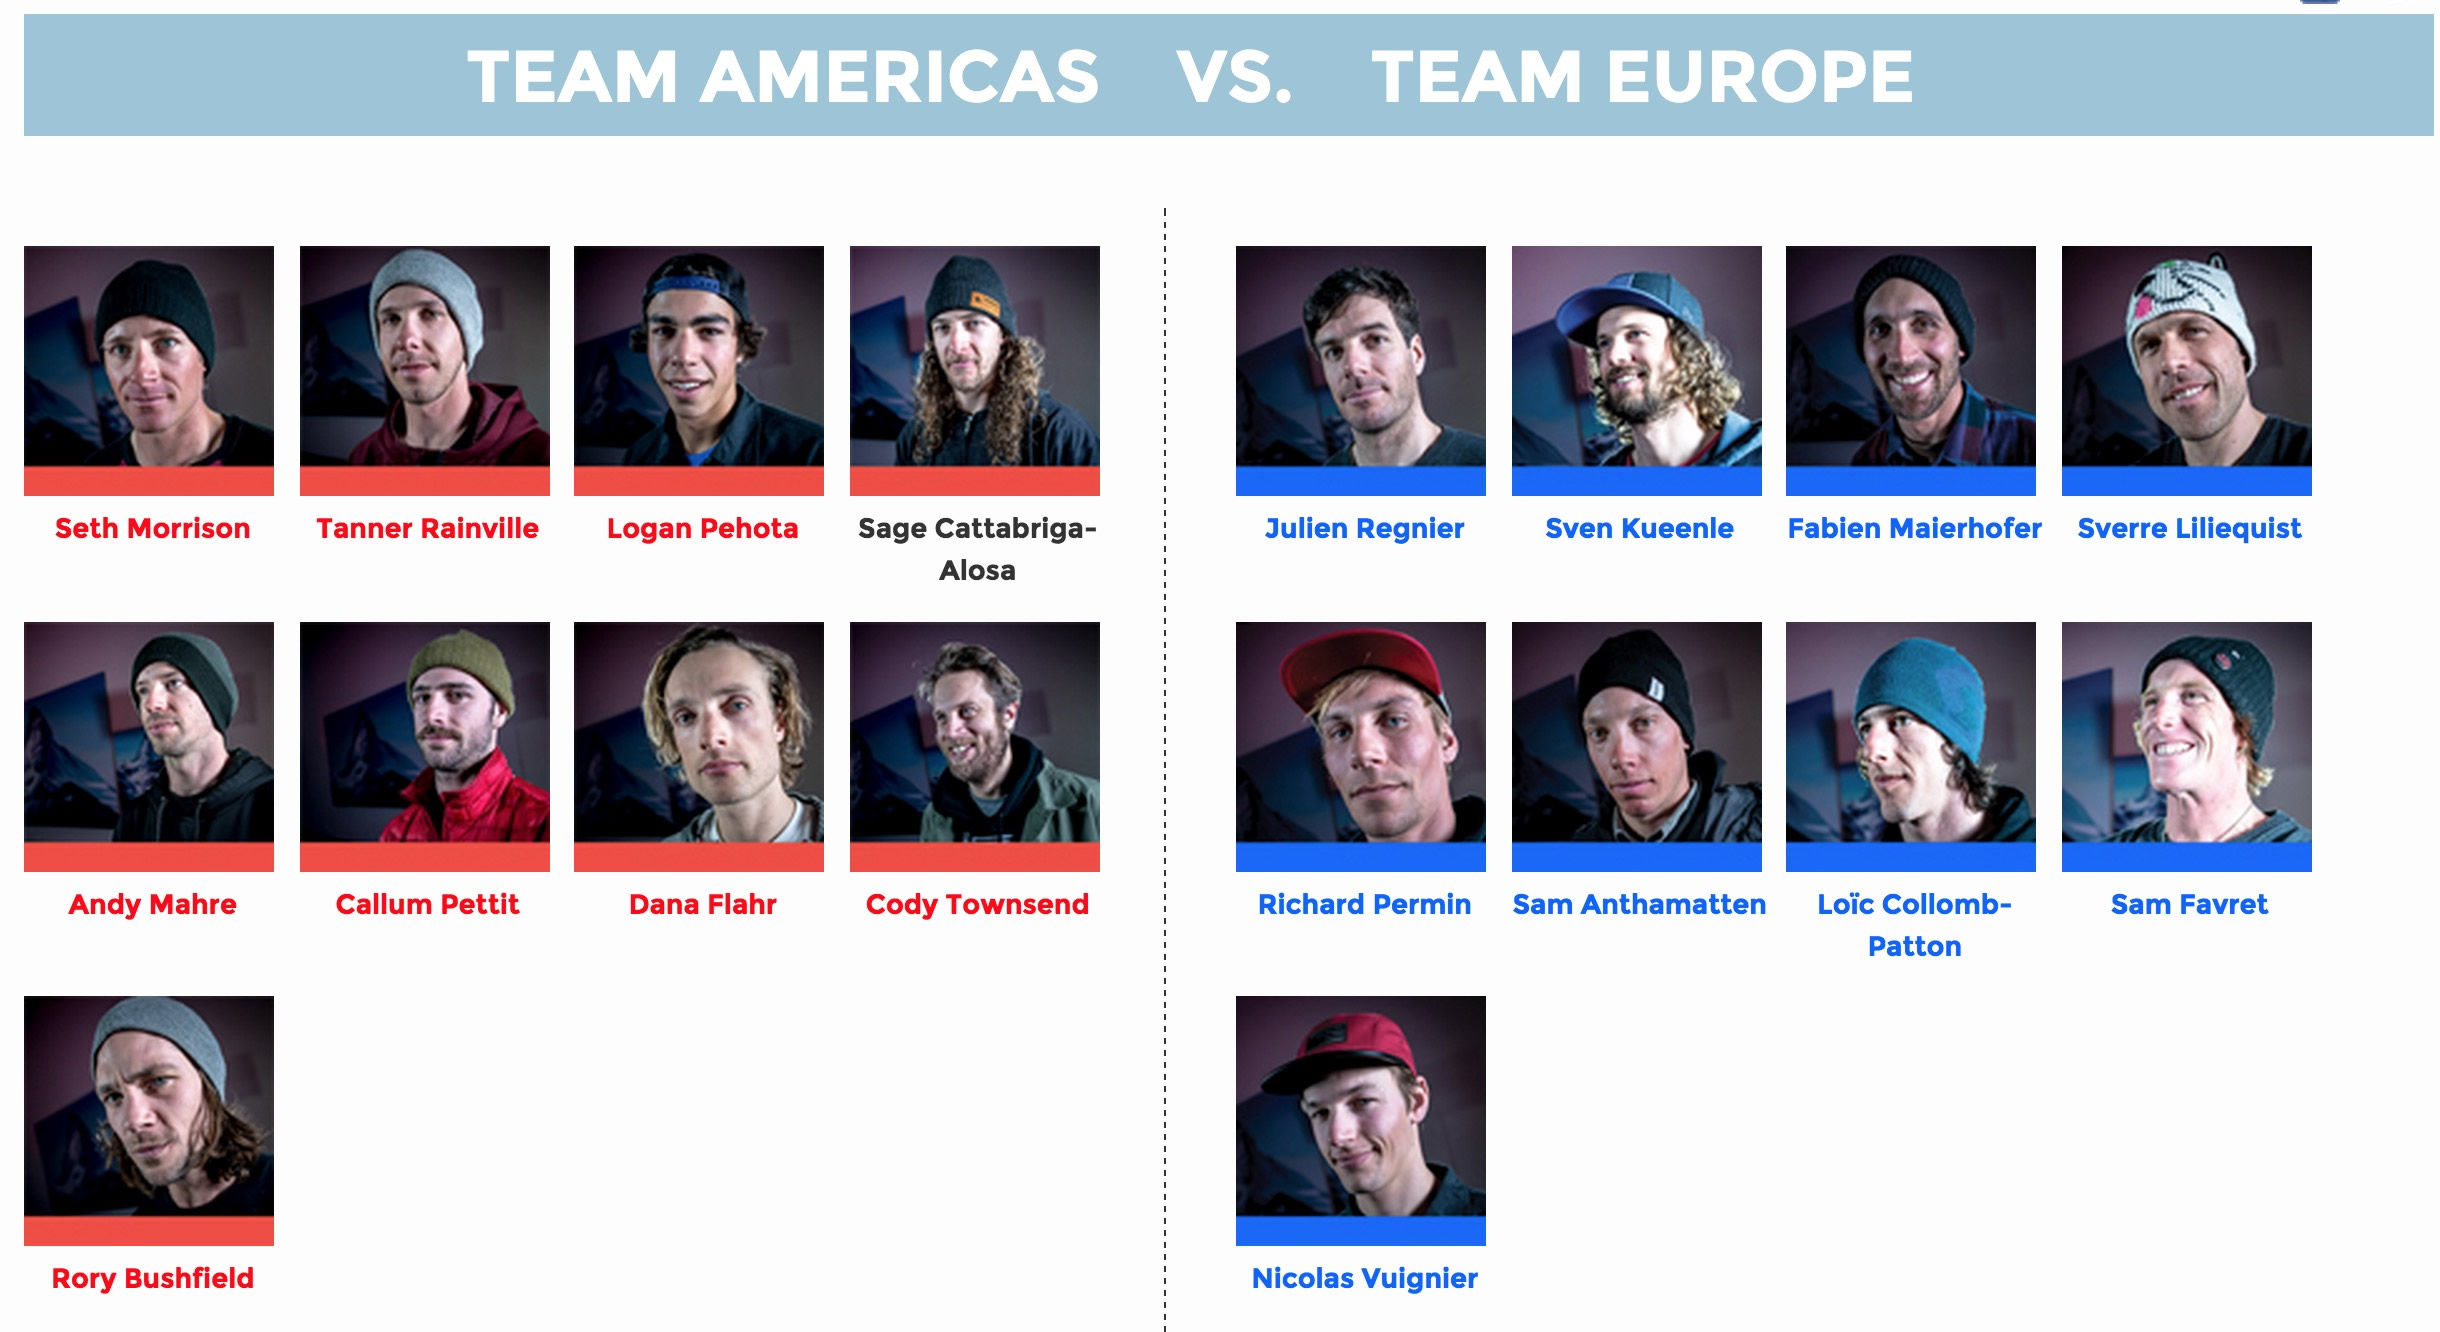 Swatch skiers Cup 2015 | Team Americas VS. Team Europe